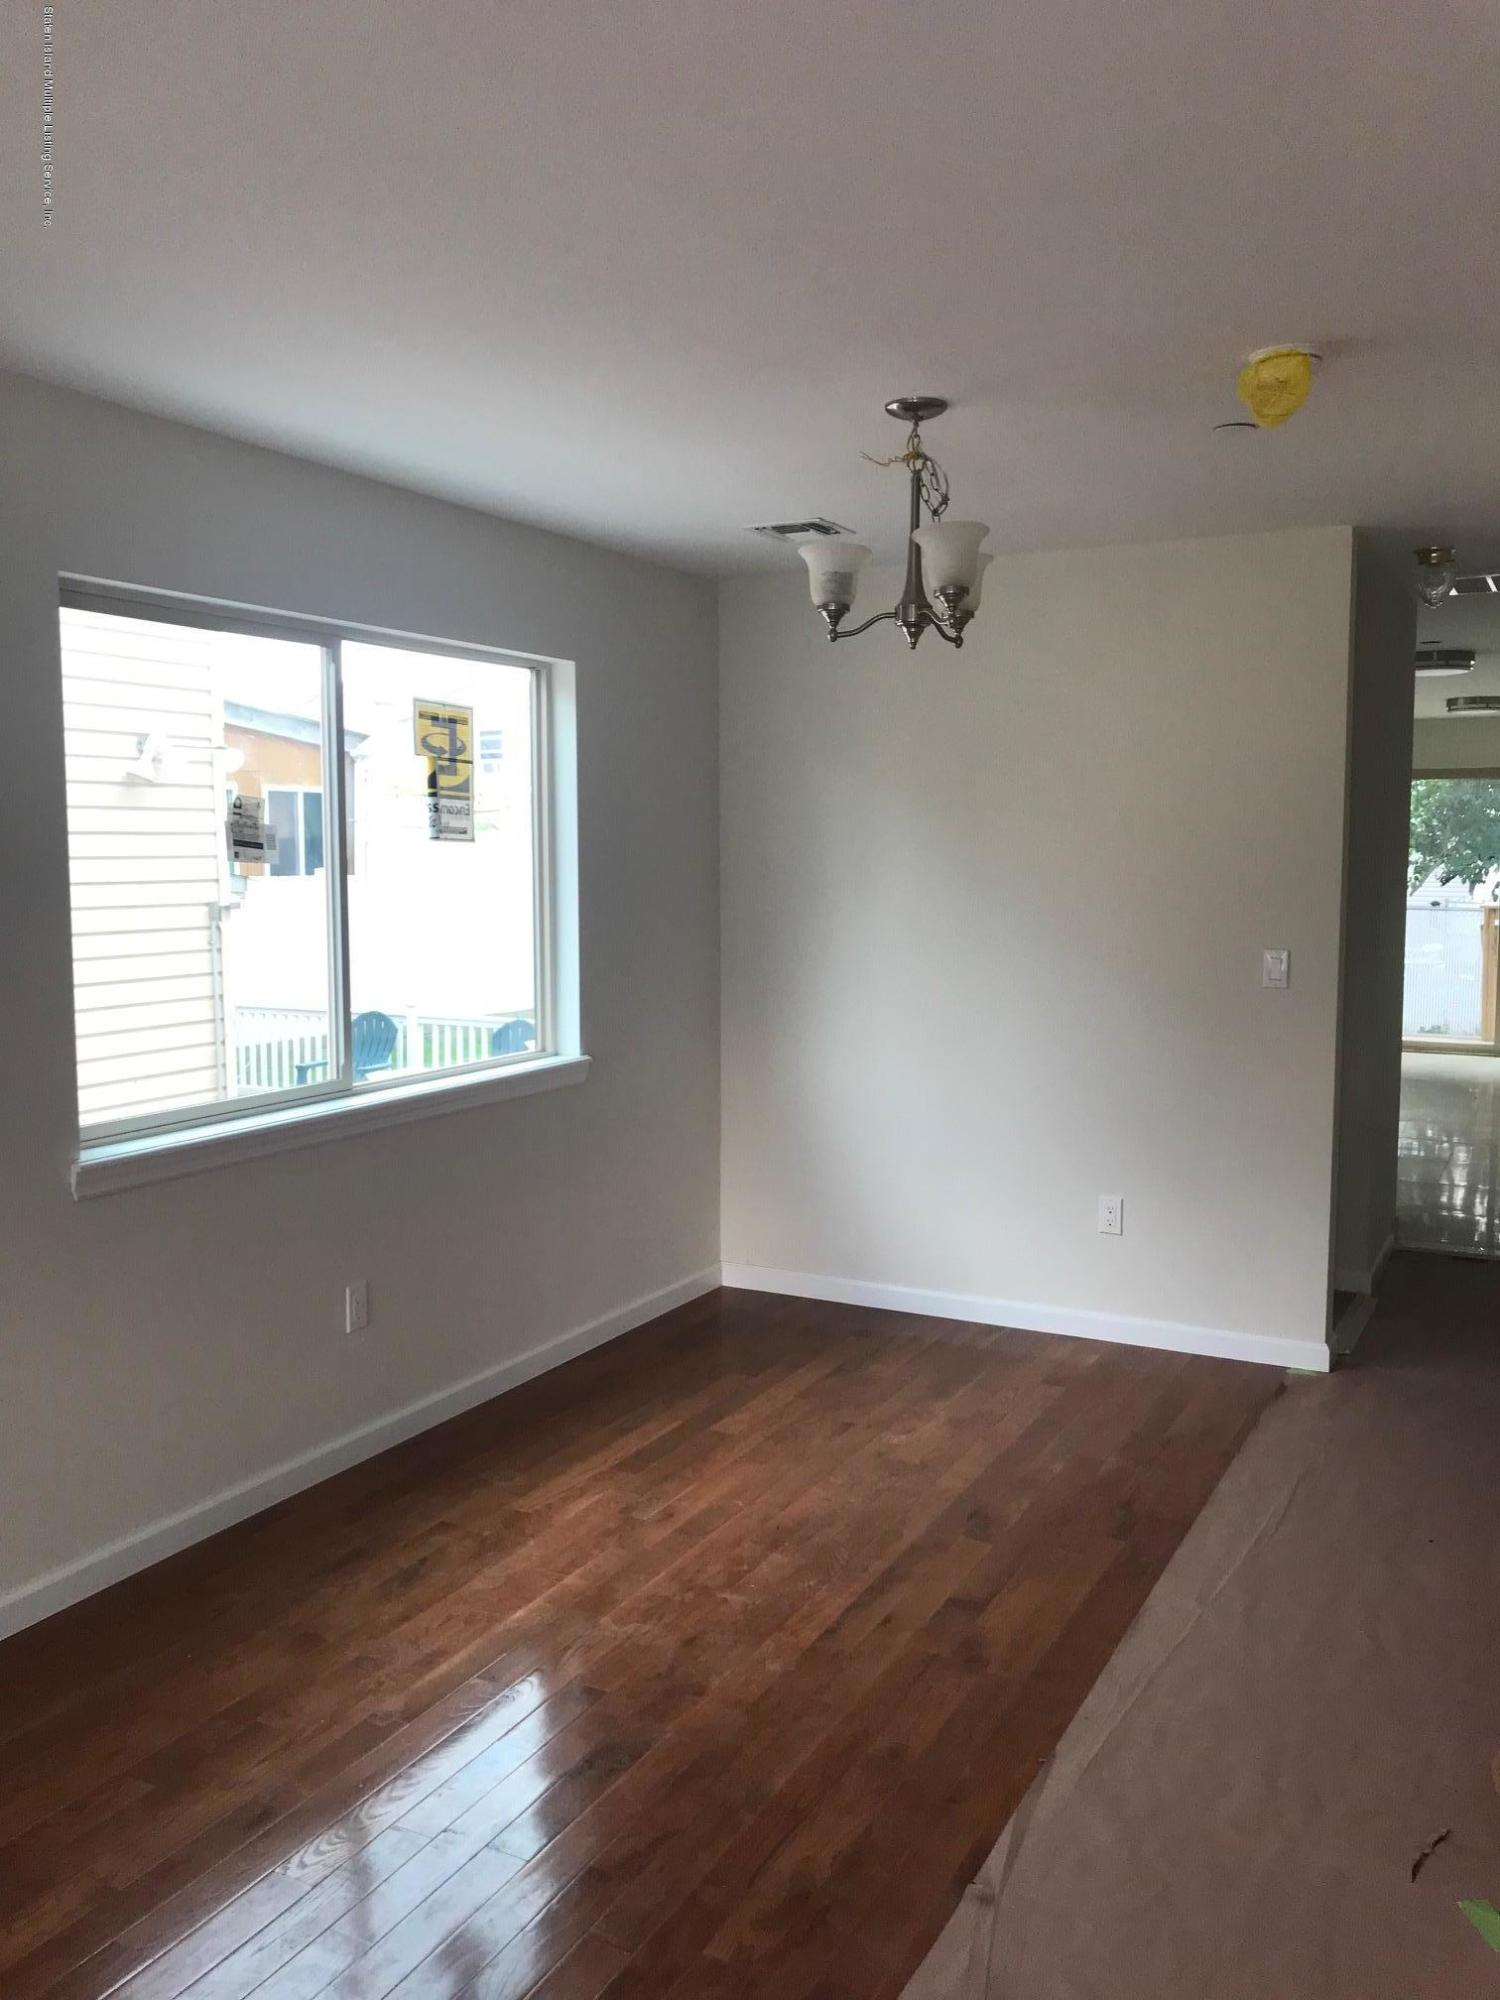 Single Family - Semi-Attached 14 Summerfield Place  Staten Island, NY 10303, MLS-1120998-14